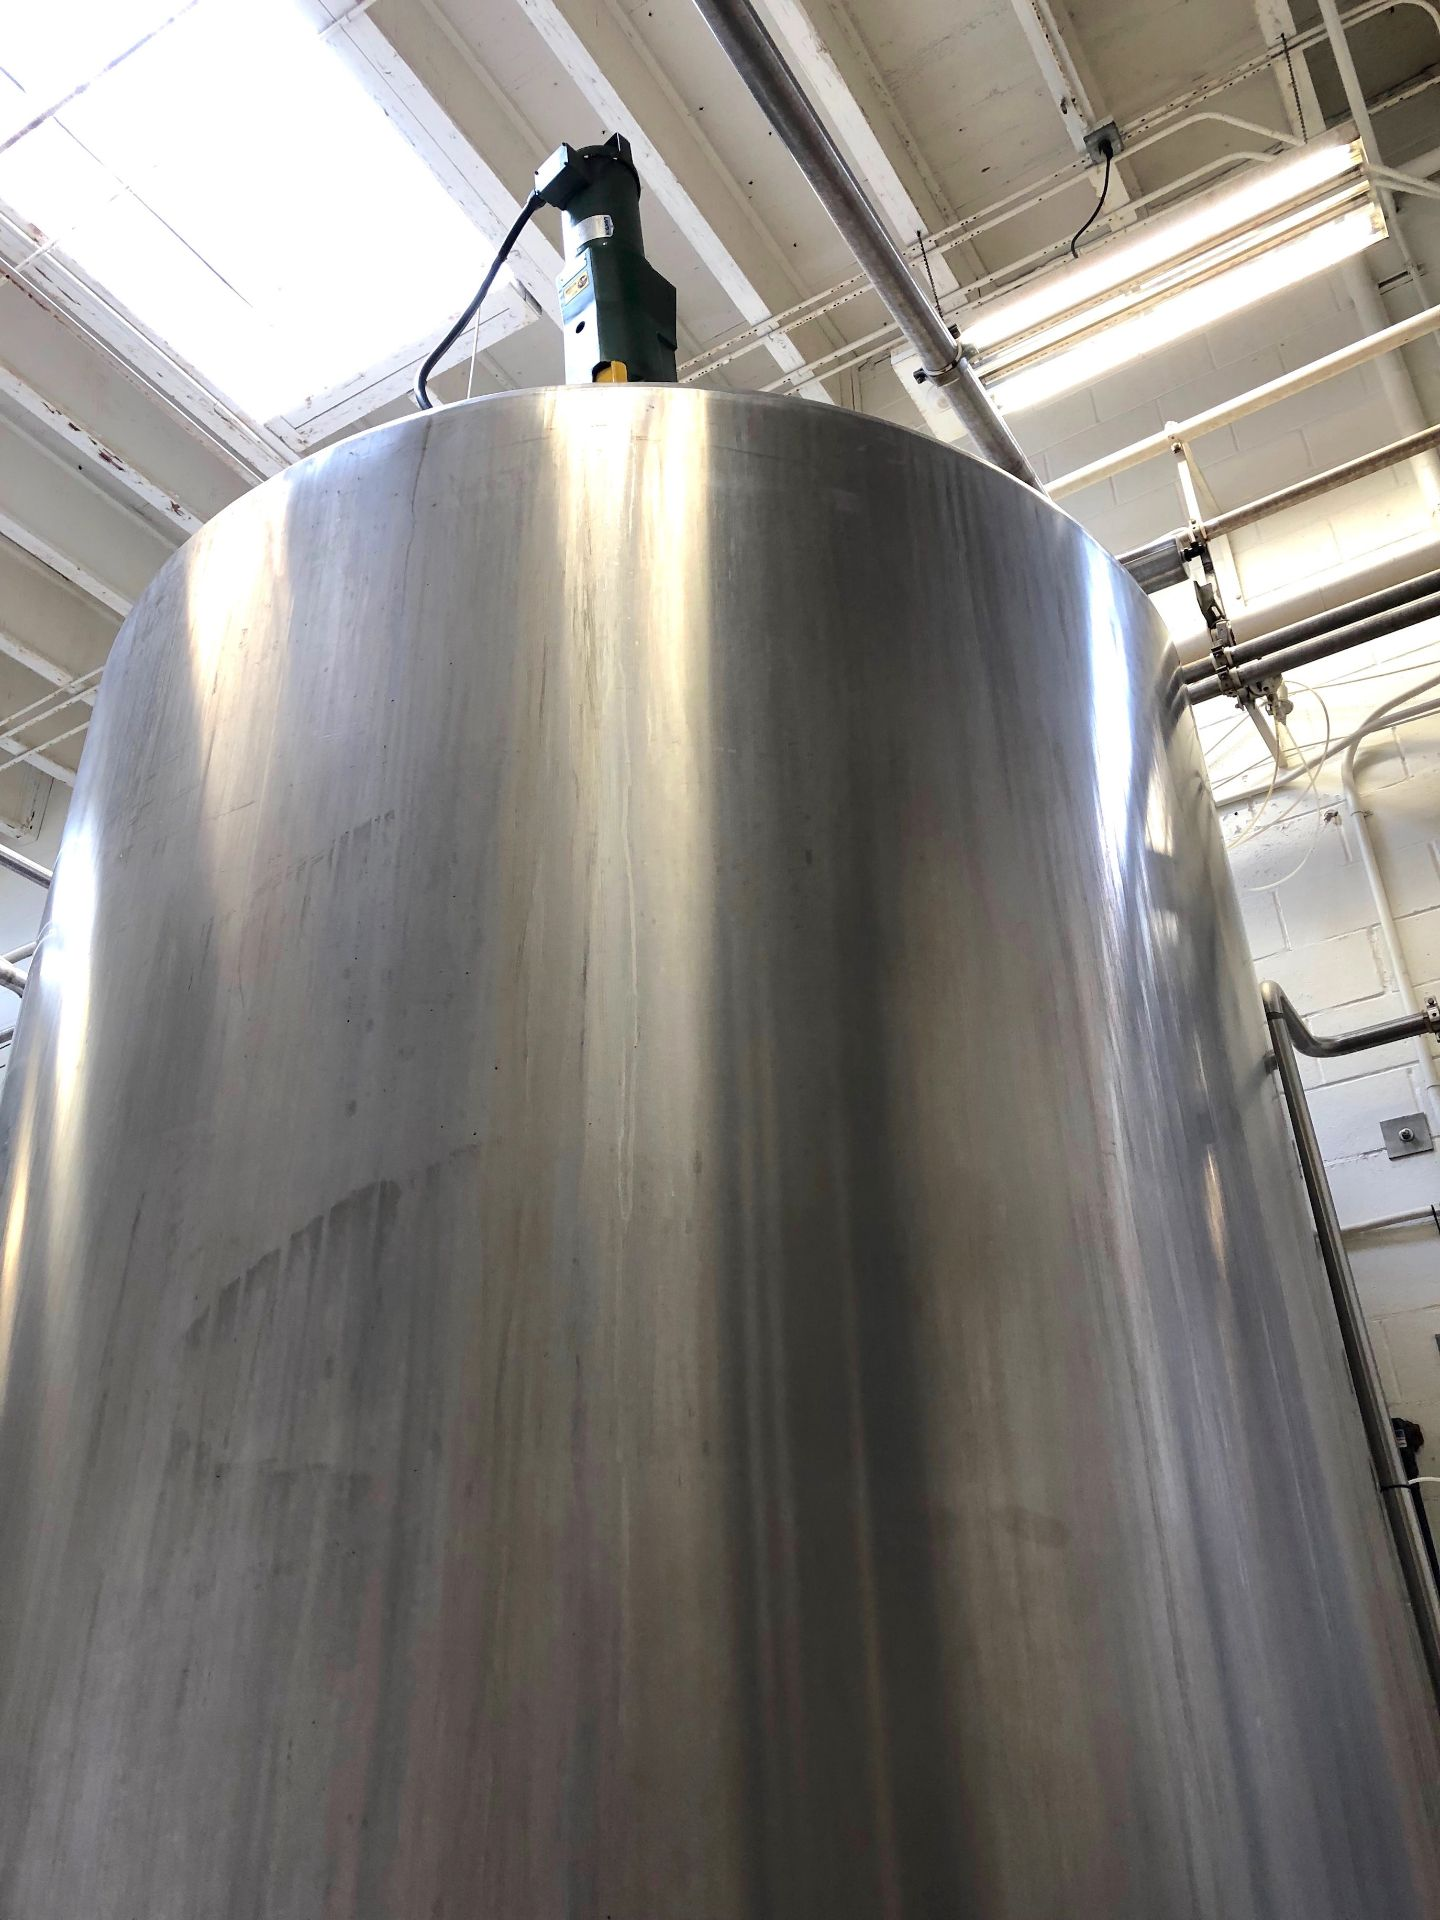 Lot 20 - Cherry Burrell 4000 Gallon Stainless Steel Vertical Mixing Tank